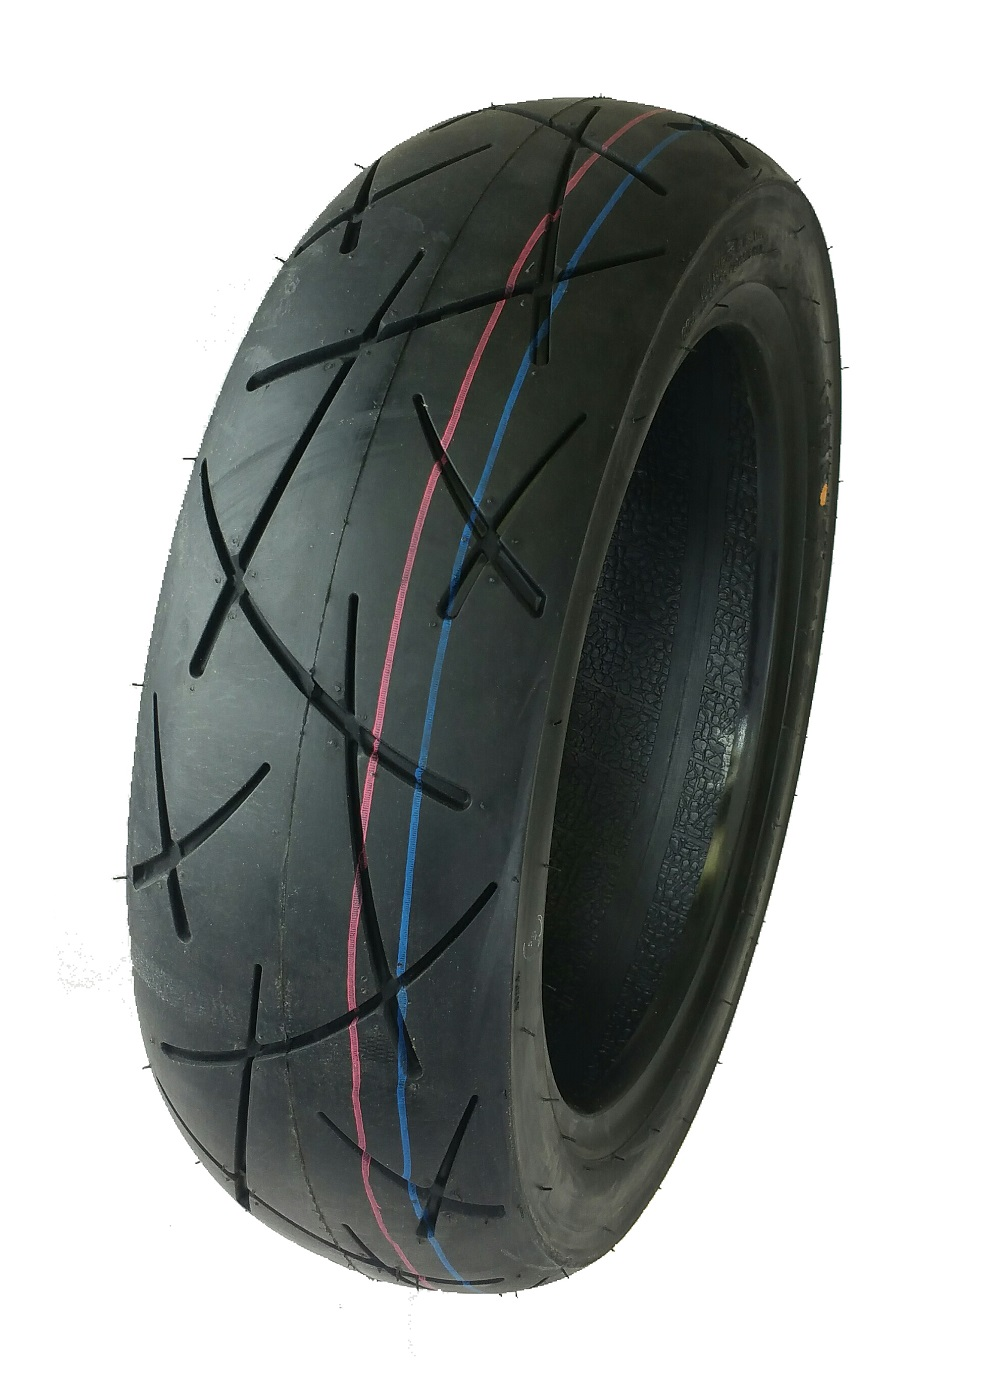 Tire 120/70-12 Tubeless Front/Rear Motorcycle Scooter Moped Ninja Street Thread